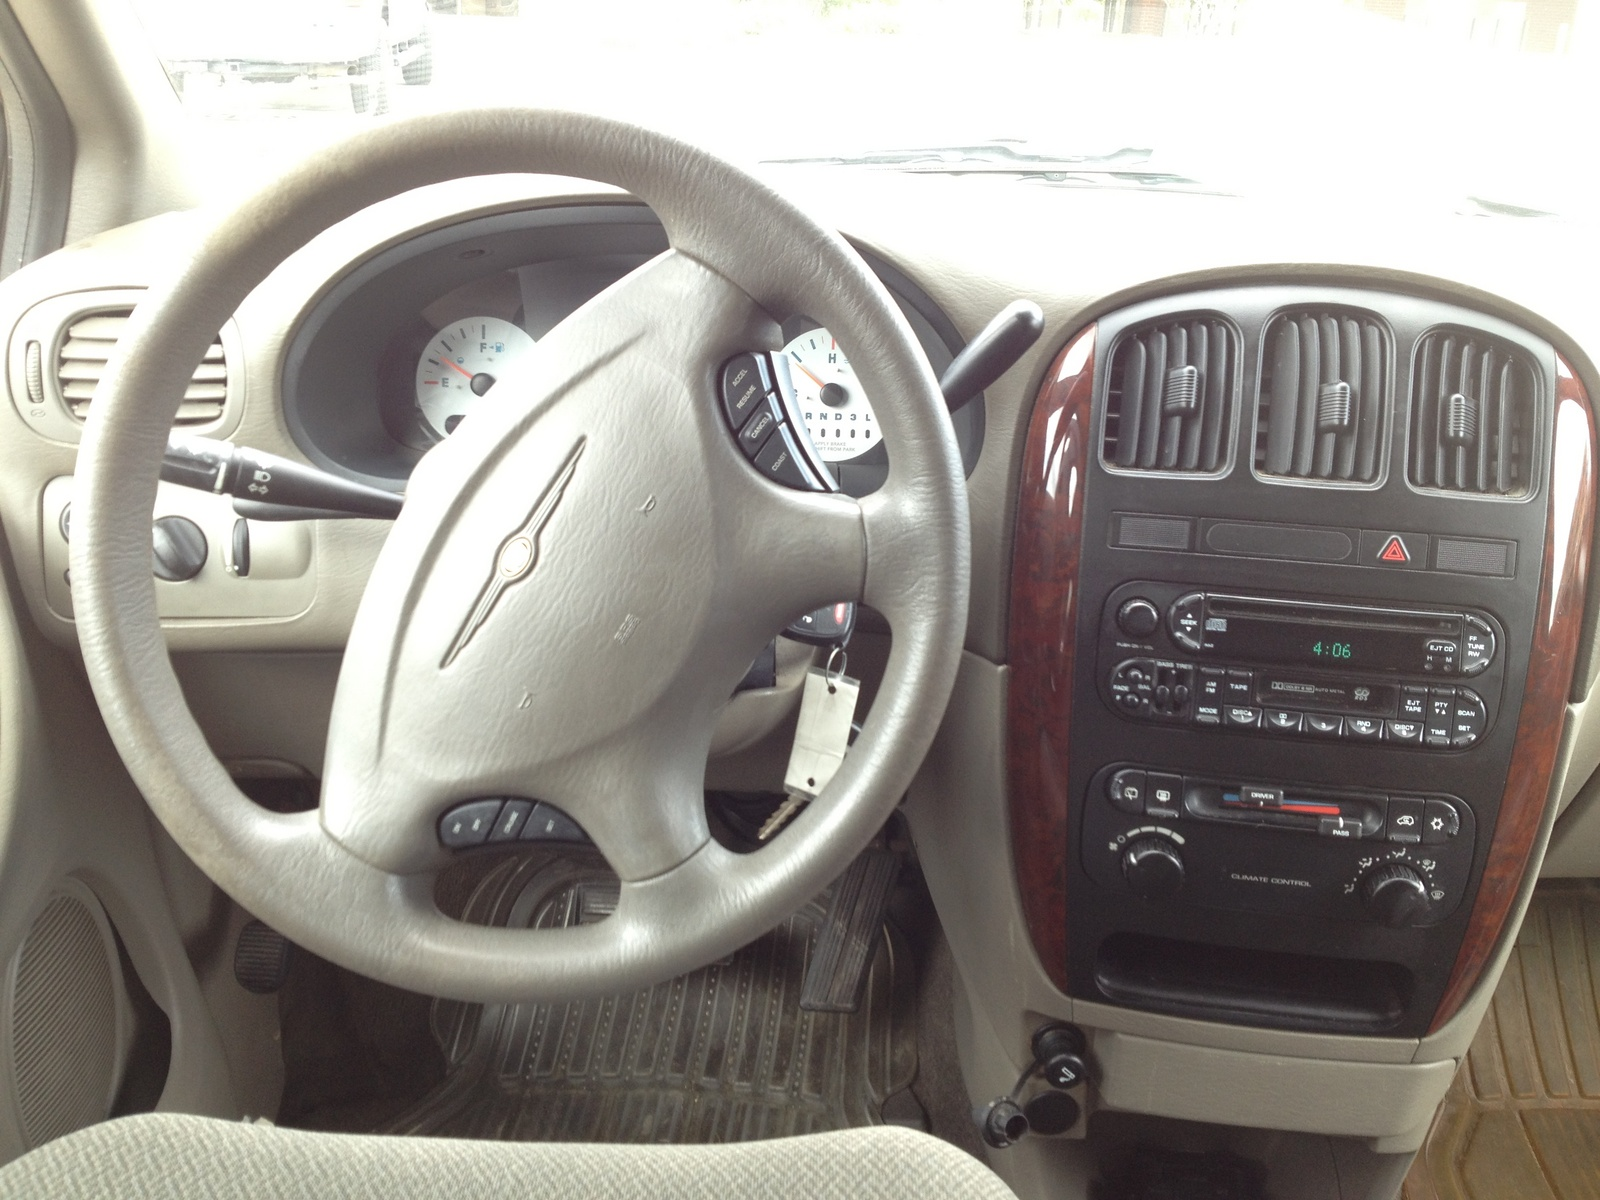 2004 chrysler town country pictures cargurus for 1999 chrysler town and country window problems